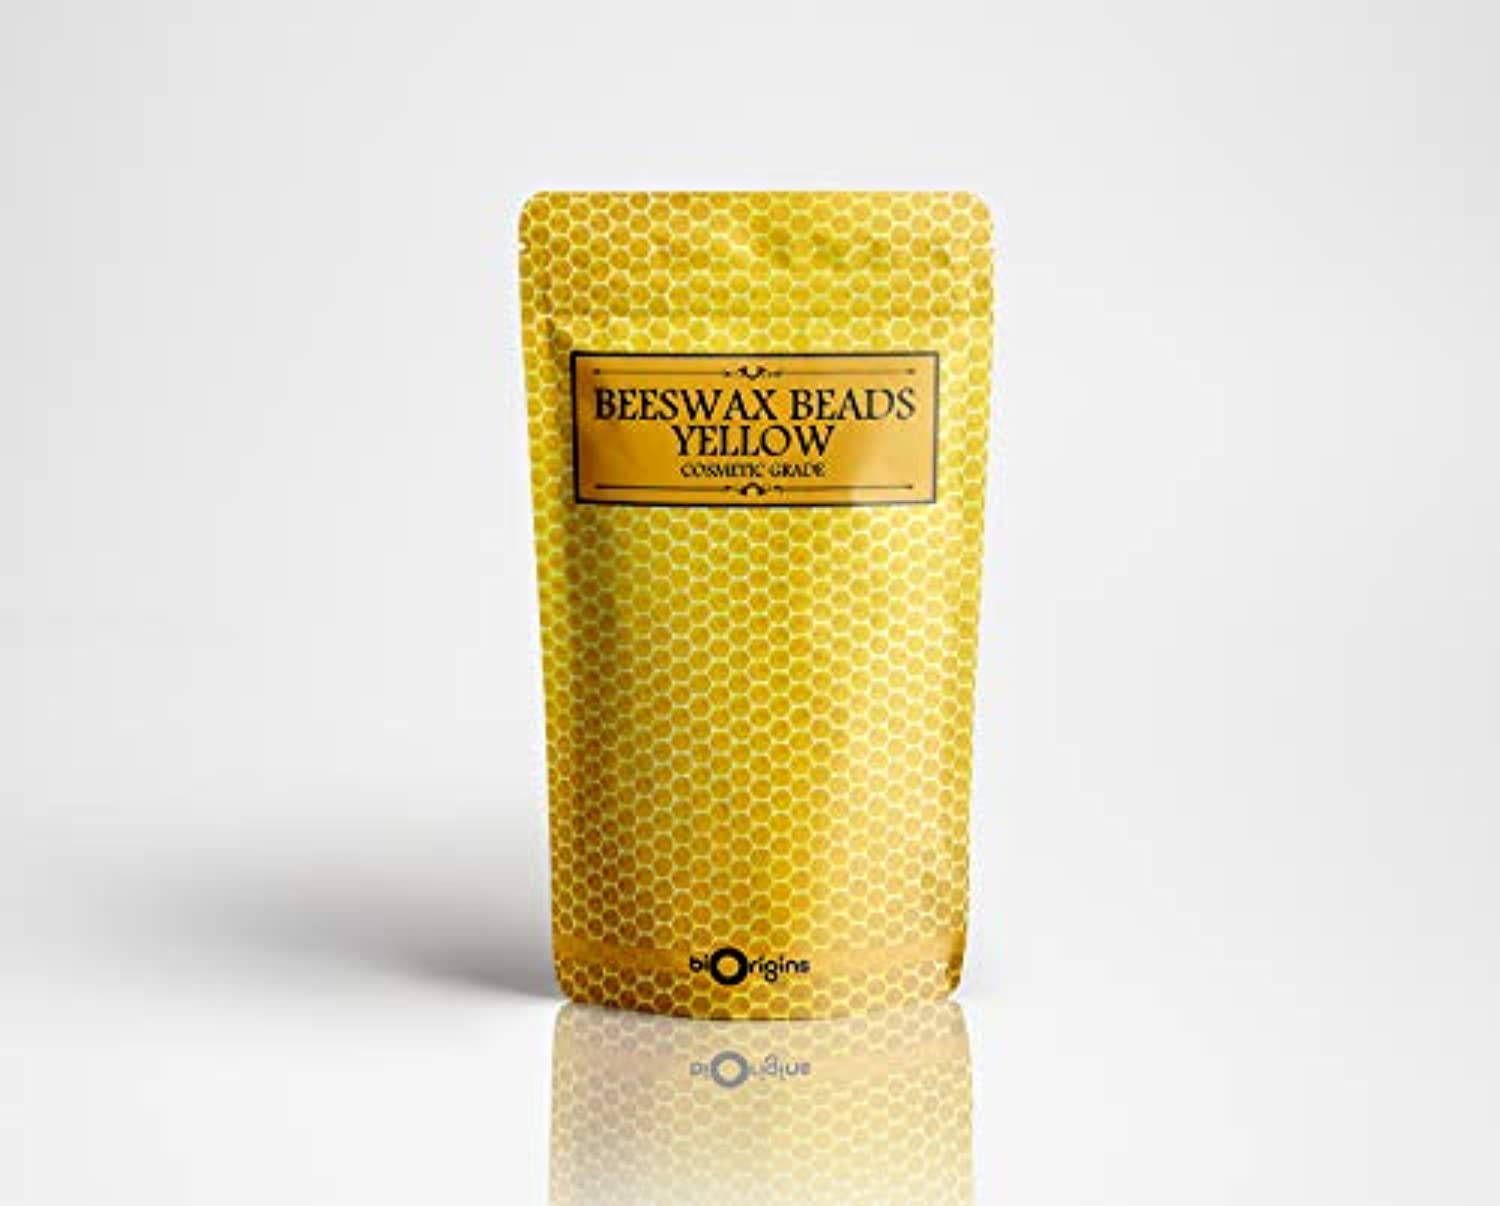 シリーズ小数ロッカーBeeswax Beads Yellow - Cosmetic Grade - 100g